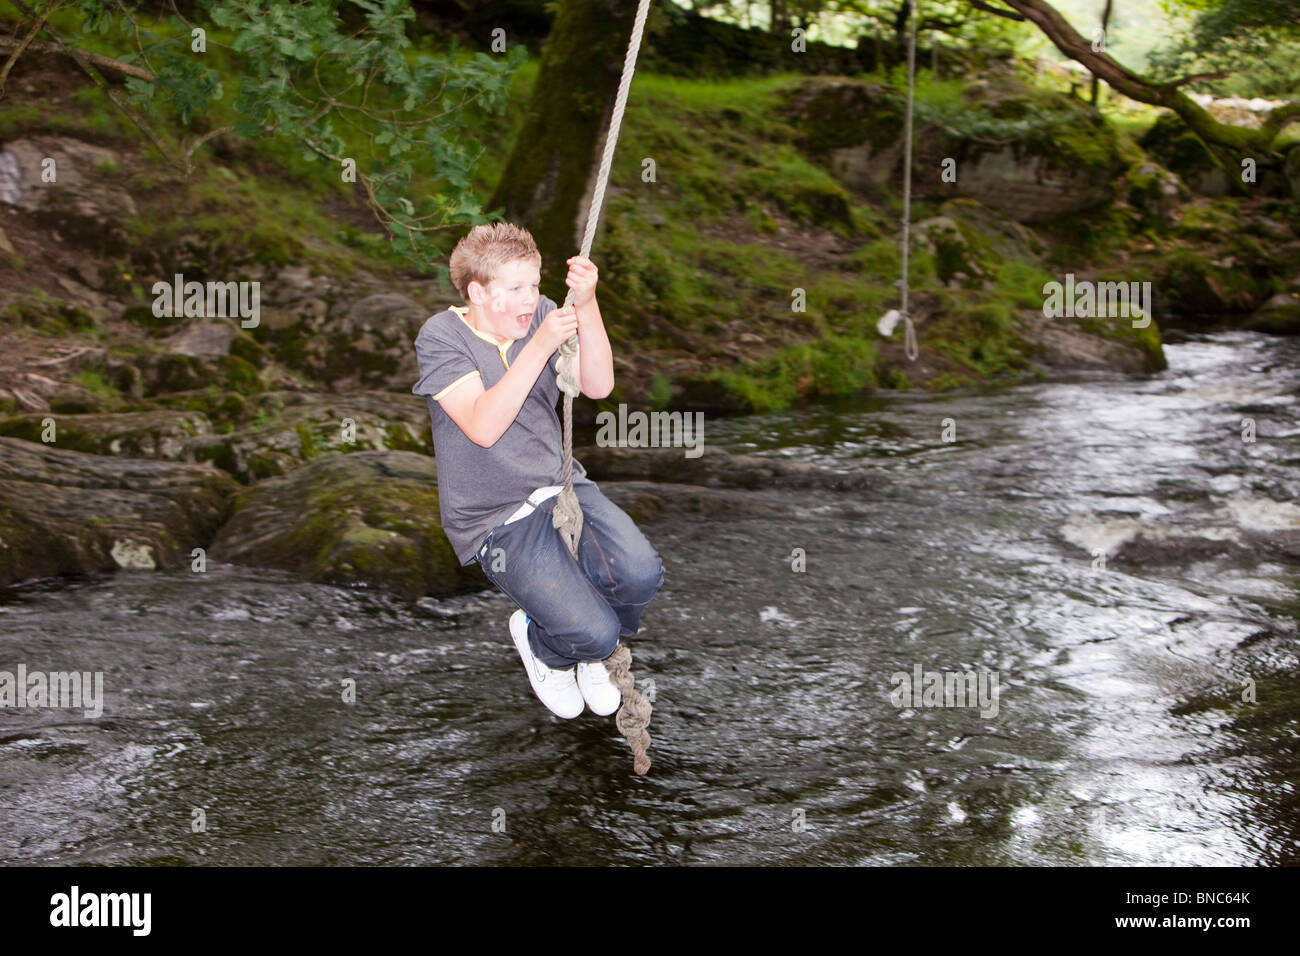 A Young Boy Playing On A Rope Swing Over The River Kent In Staveley